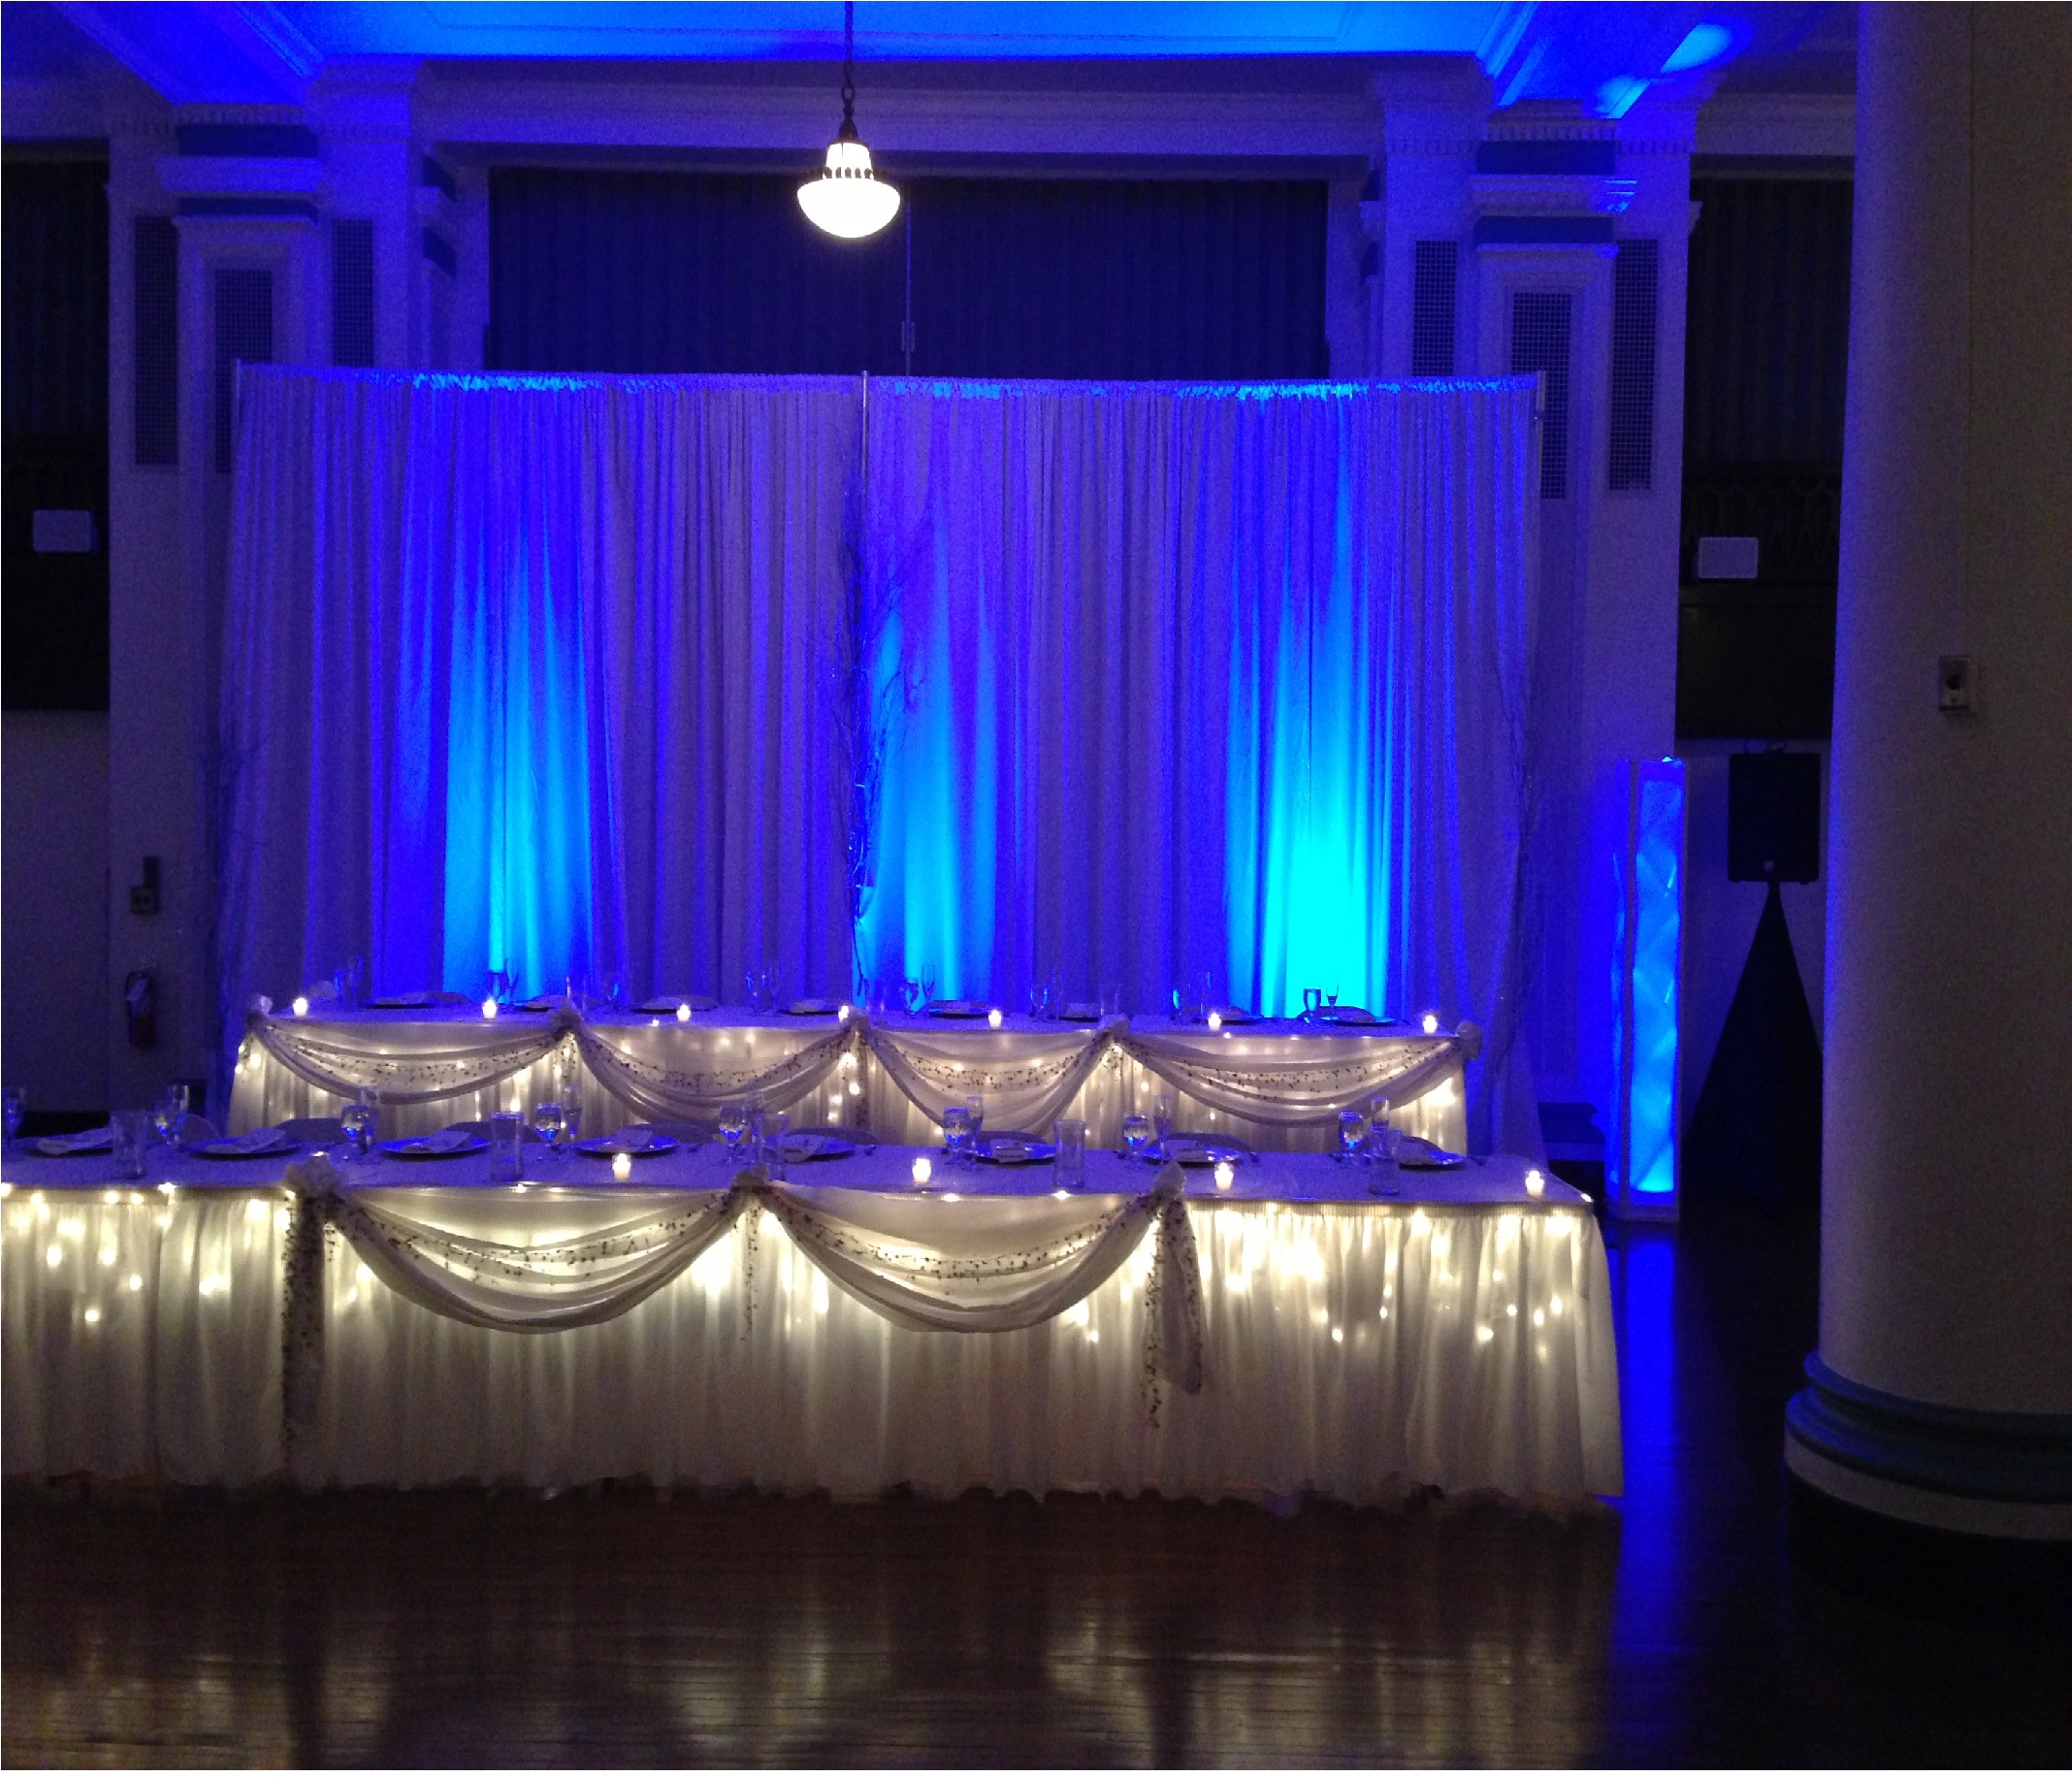 Blue up lighting rental in Fort Wayne, IN. Rent uplight in blue color for wedding lighting.